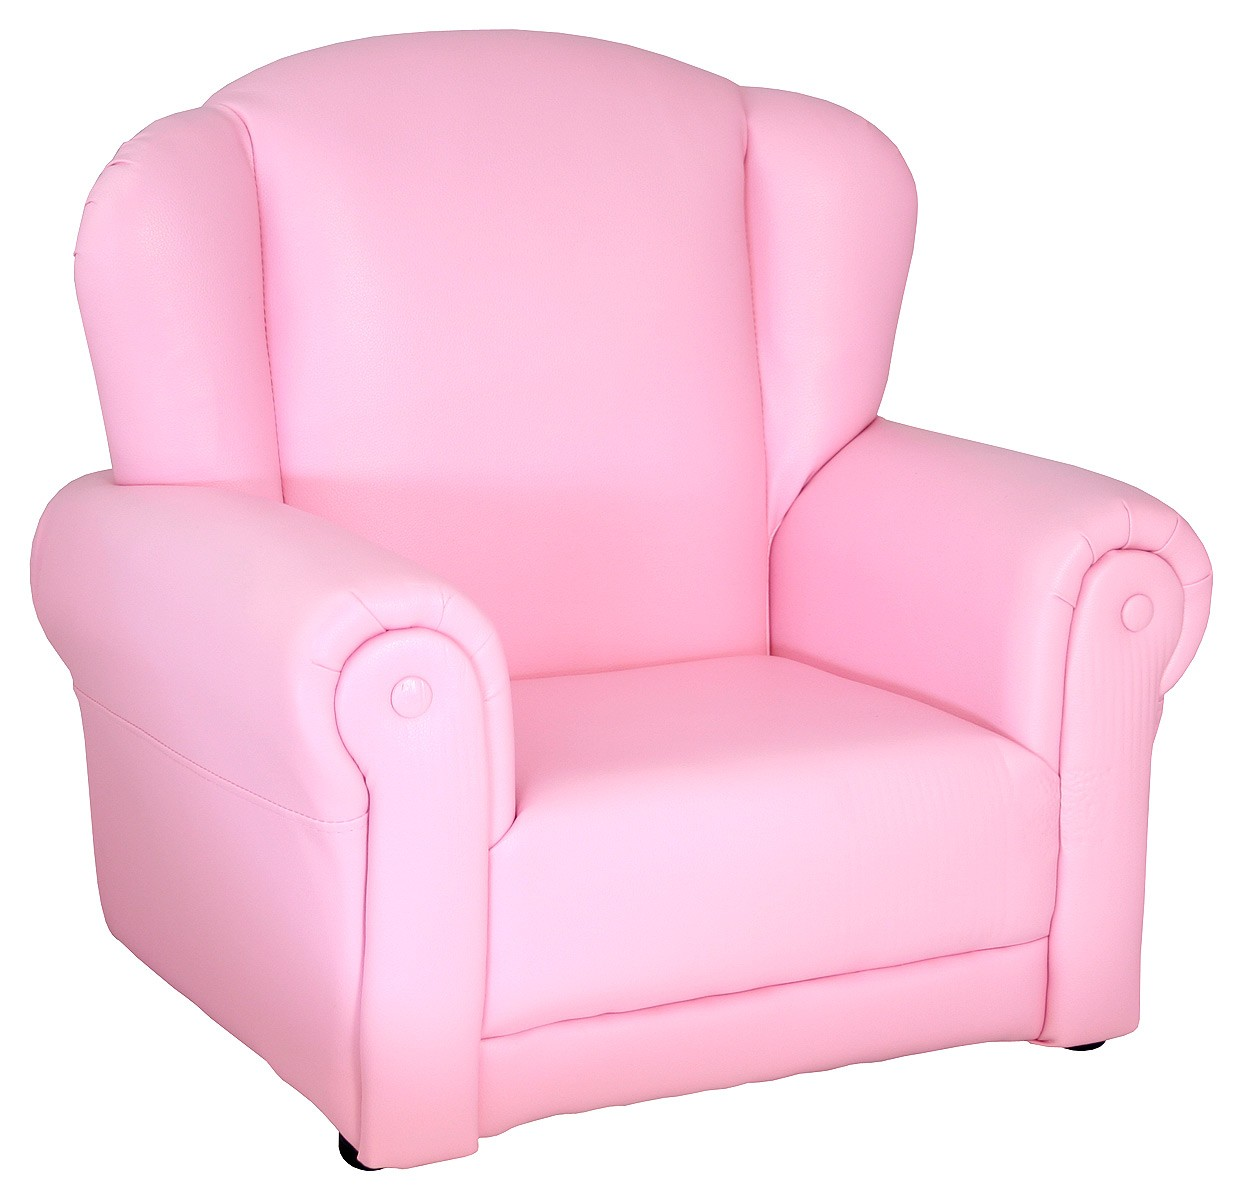 kids sofa chair